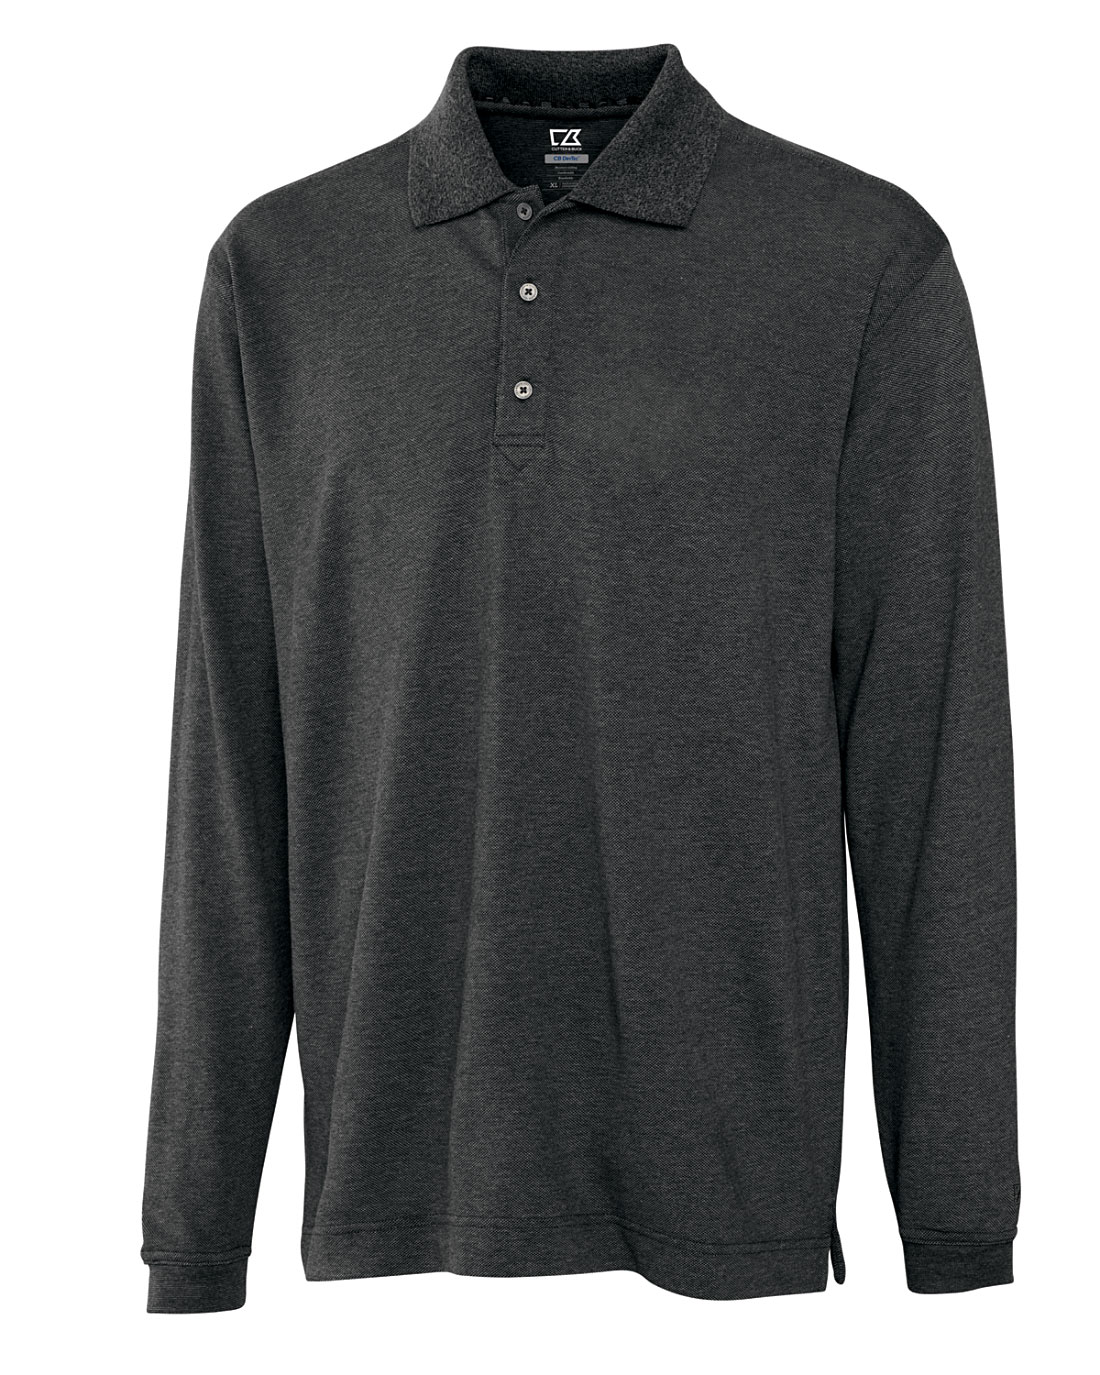 CB DryTec Long-Sleeve Championship Polo for Men